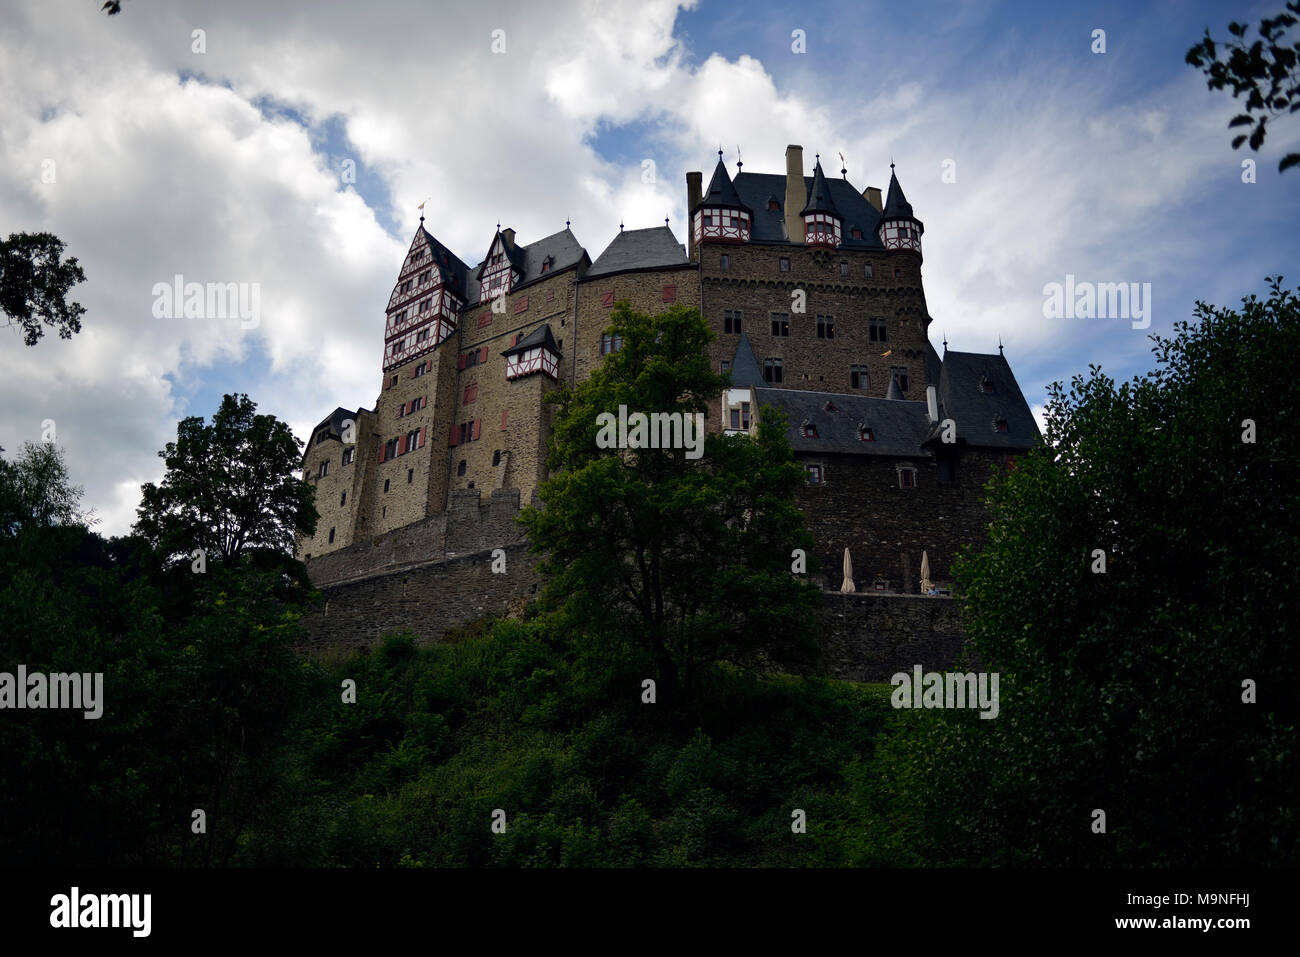 Eltz Castle (Burg Eltz) in a wide-angle view from afar. Koblenz, Germany. - Stock Image